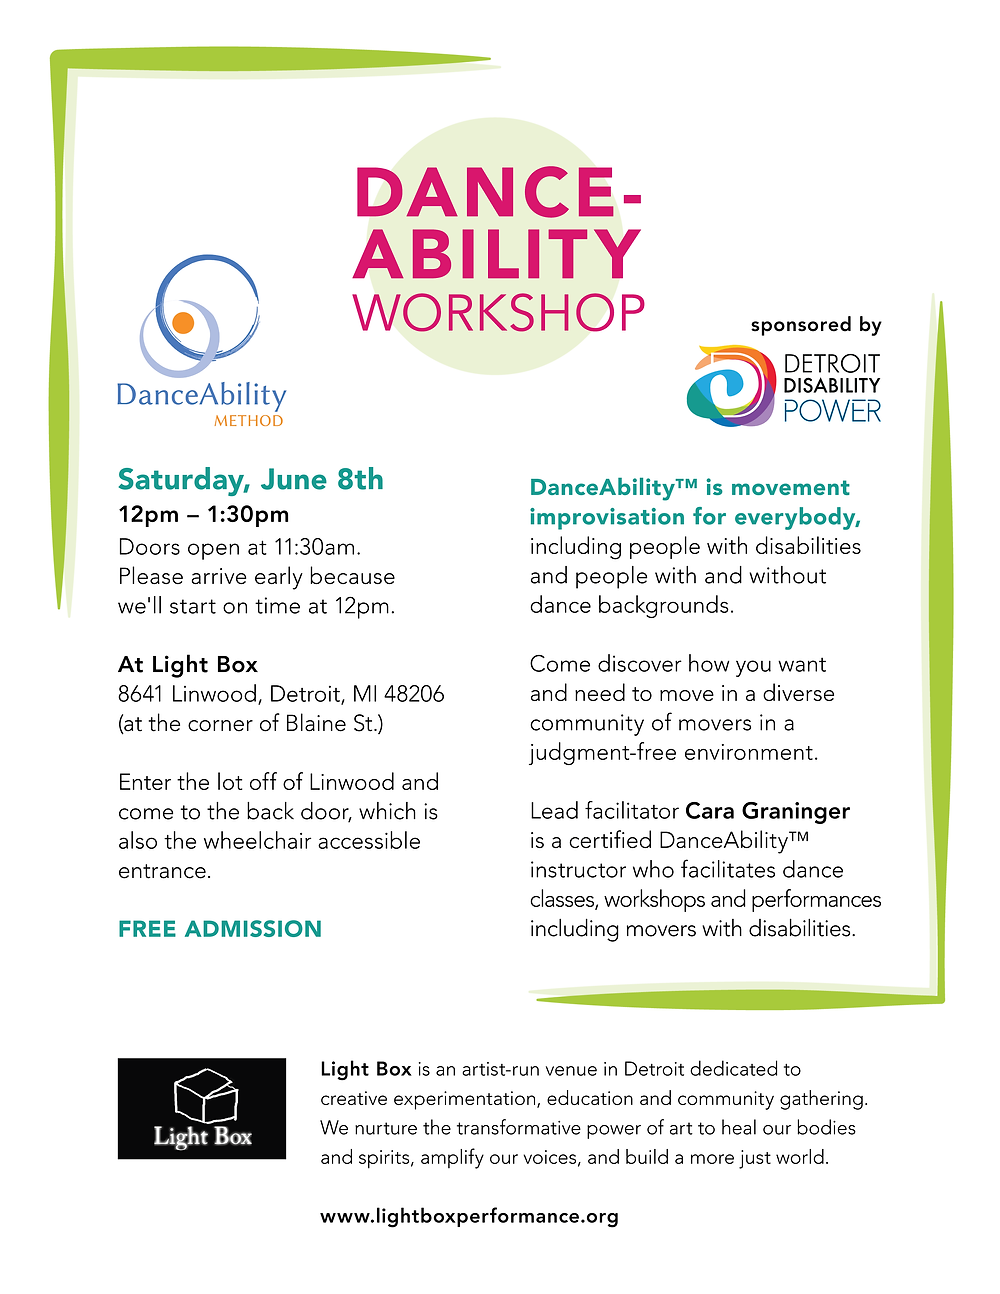 DANCE-ABILITY Workshop Flier with event details